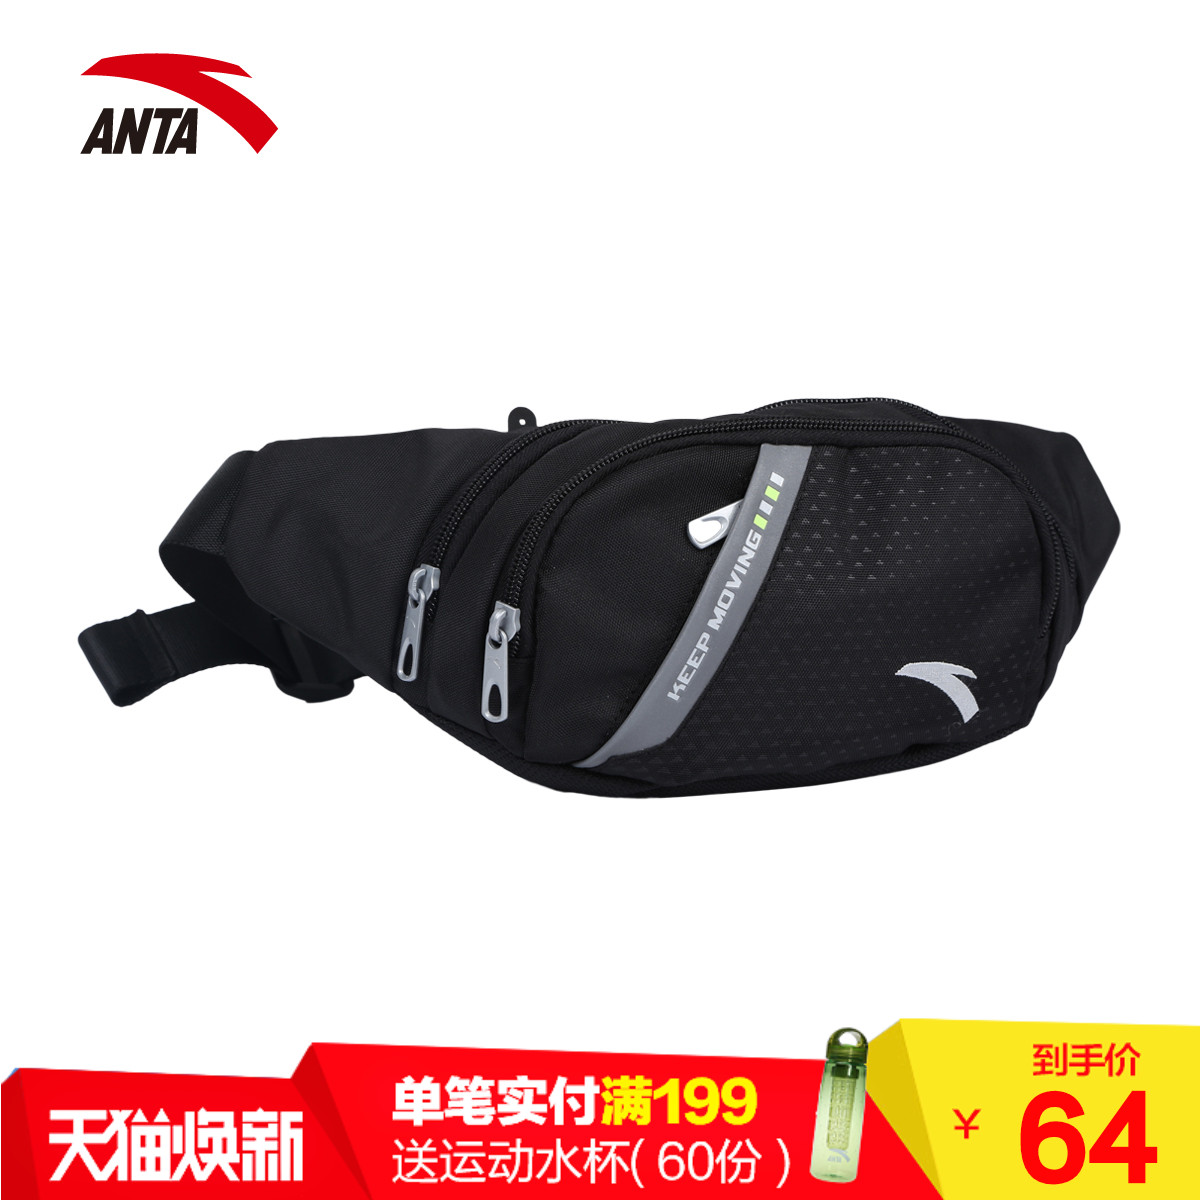 Anta official flagship store Genuine sports pockets Male outdoor running mobile phone bag Multi-function Messenger chest bag